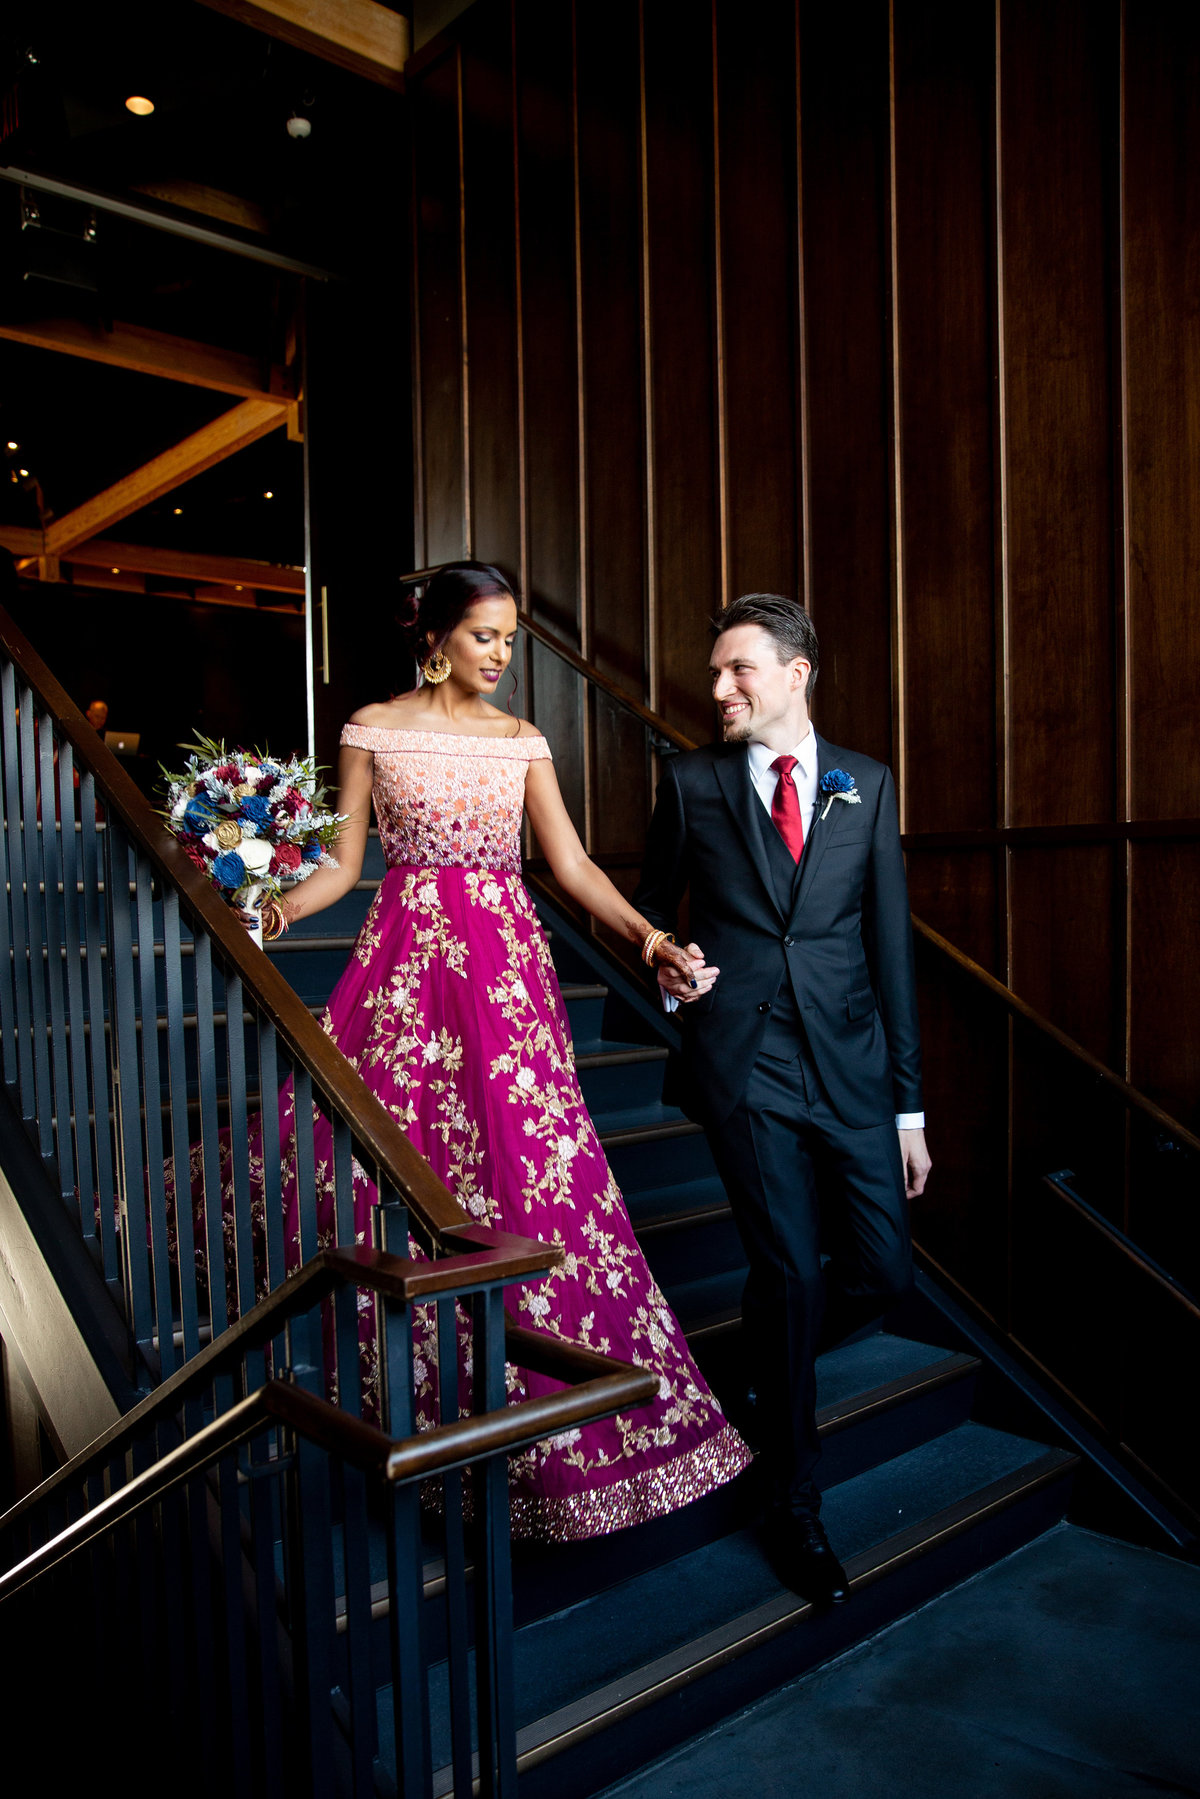 District Winery wedding in Washington, DC